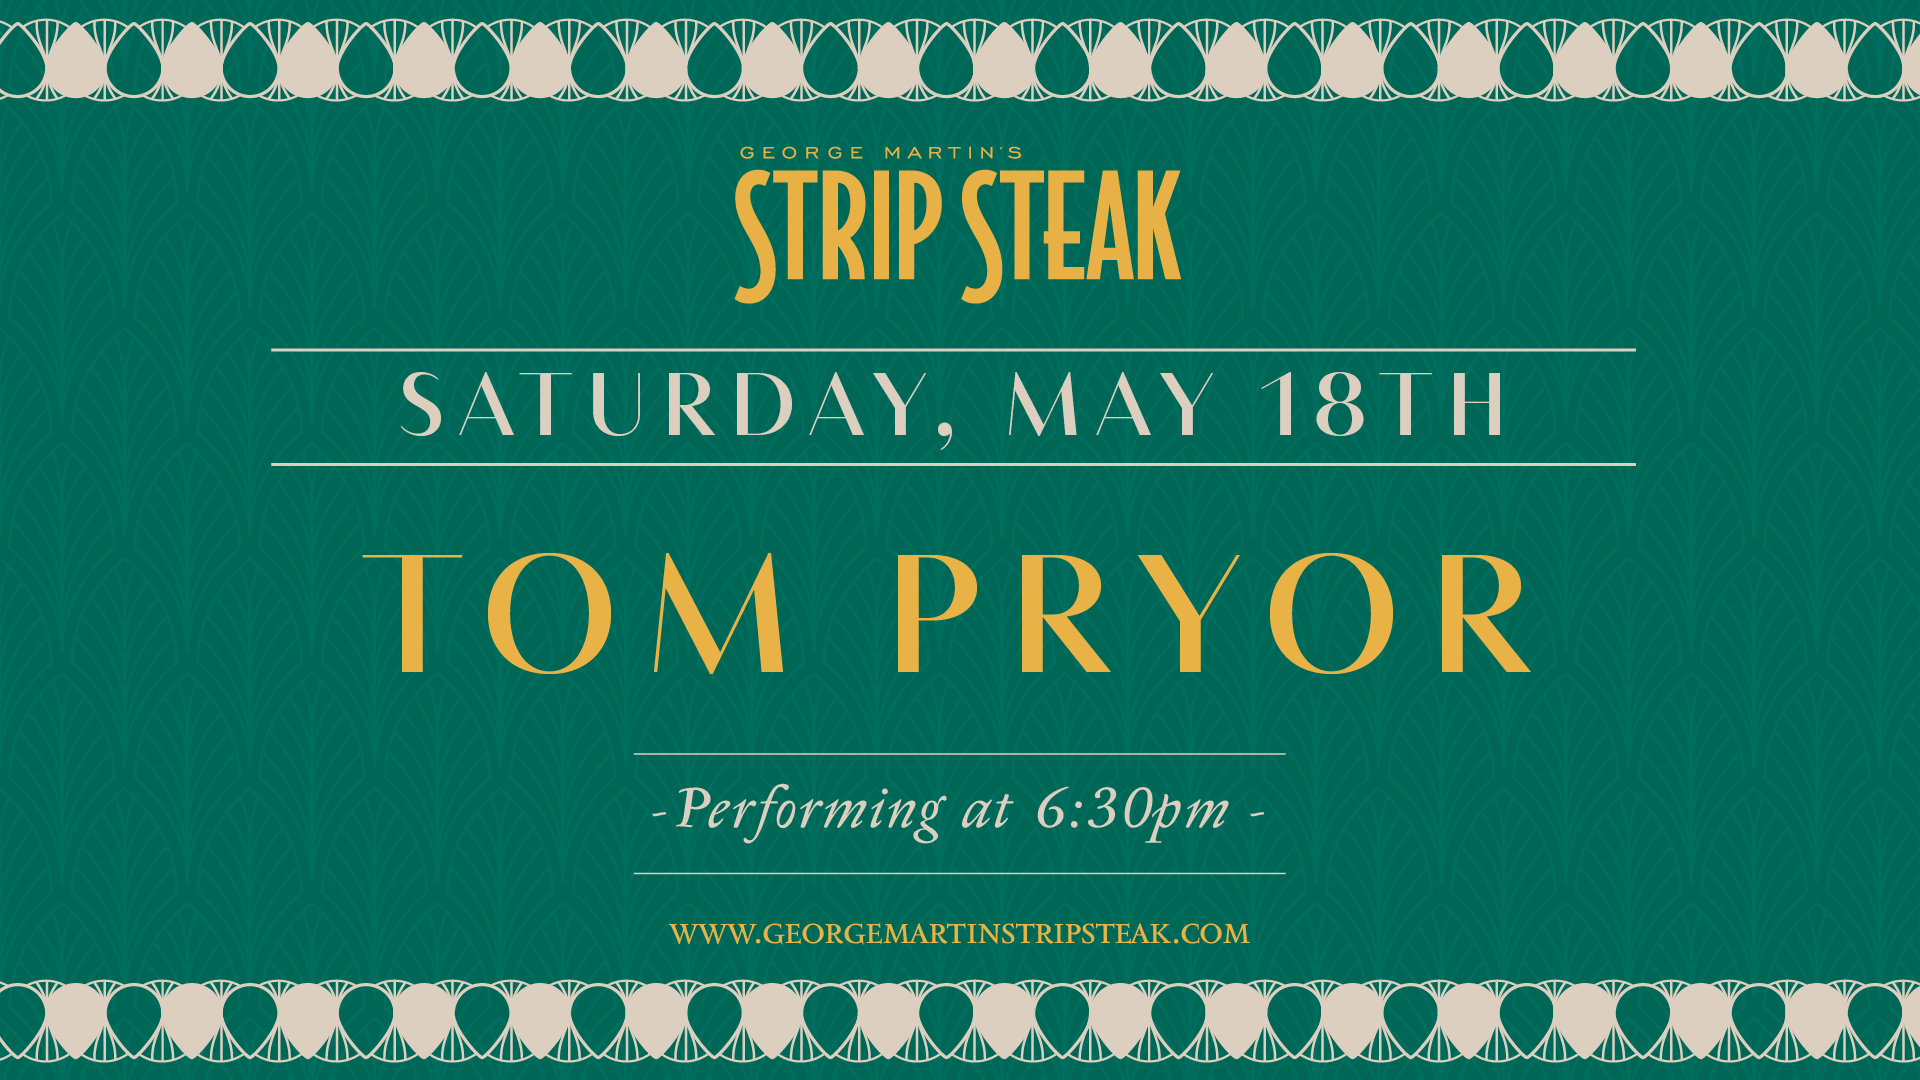 Flyer for live music with Tom Pryor at 6:30pm